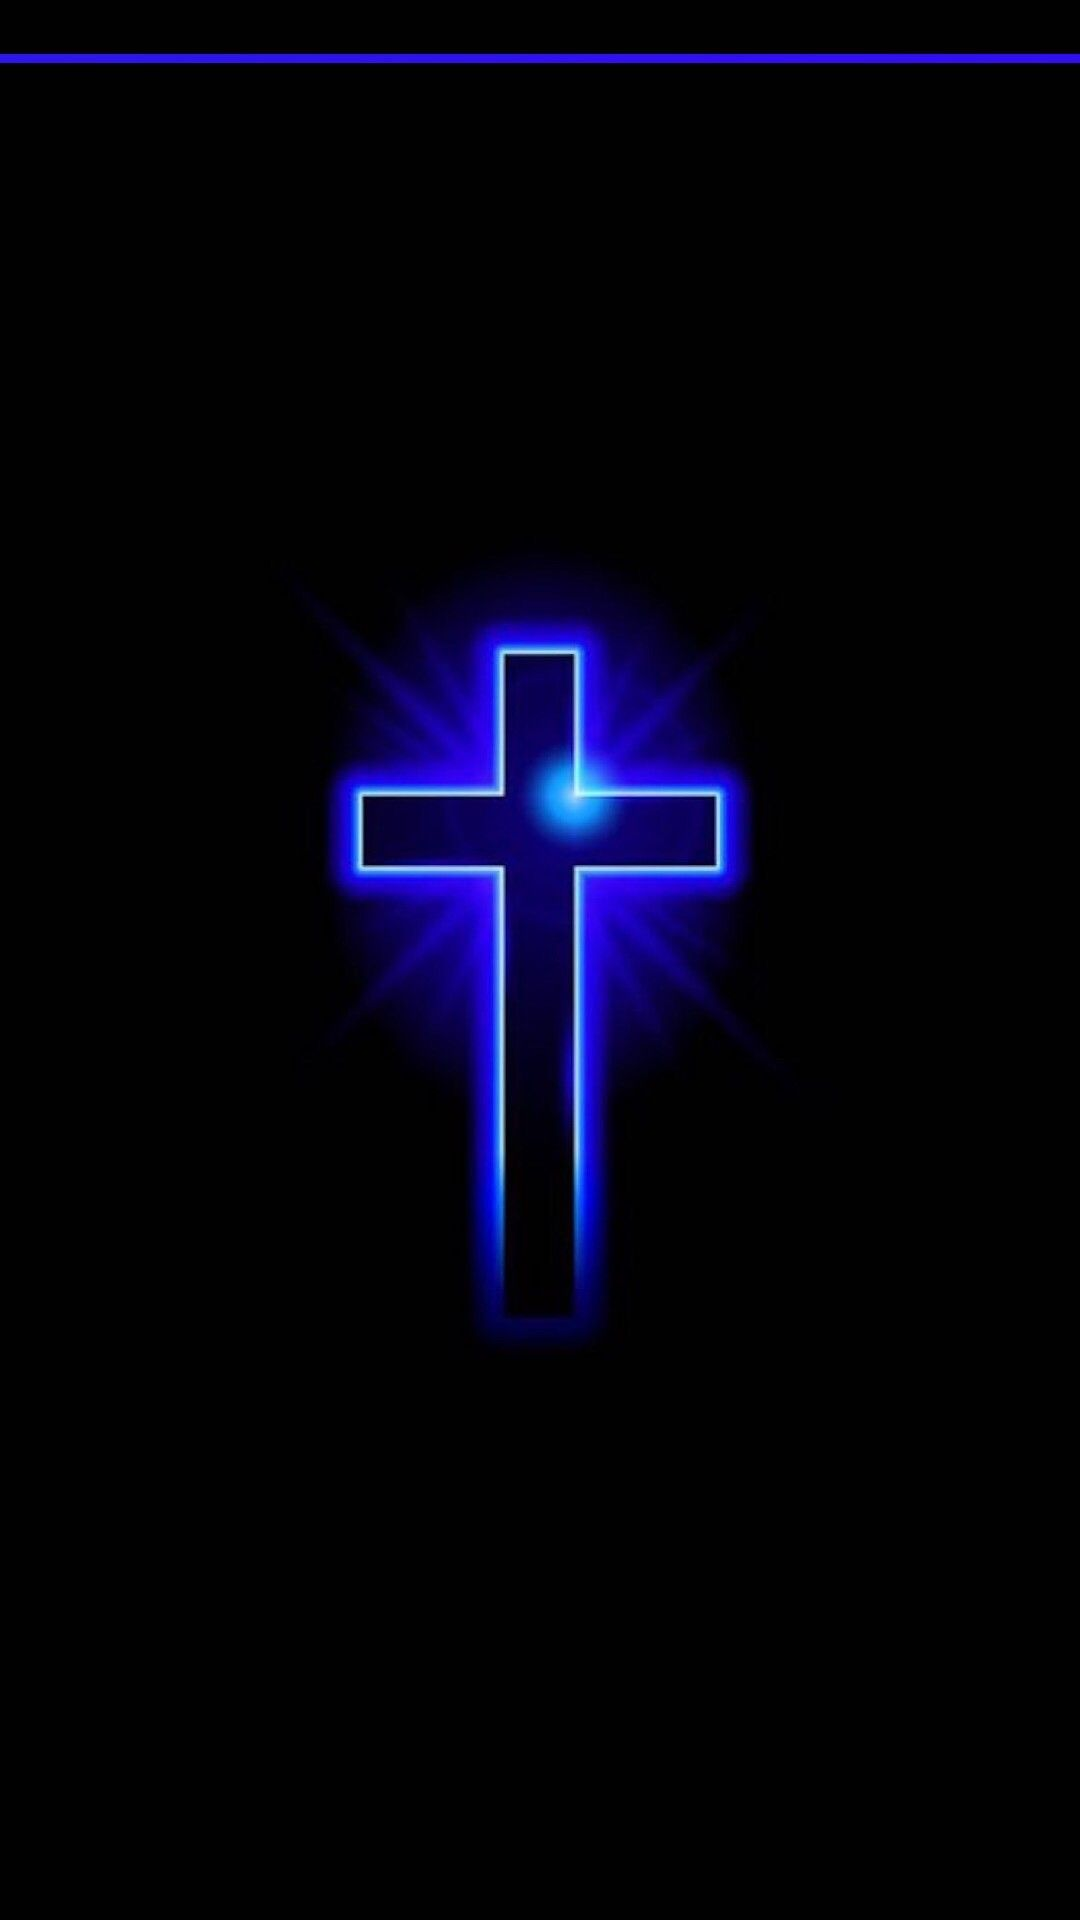 Cross Wallpapers High Quality Hupages Download Iphone Wallpapers Jesus Cross Wallpaper Cross Wallpaper Jesus On The Cross